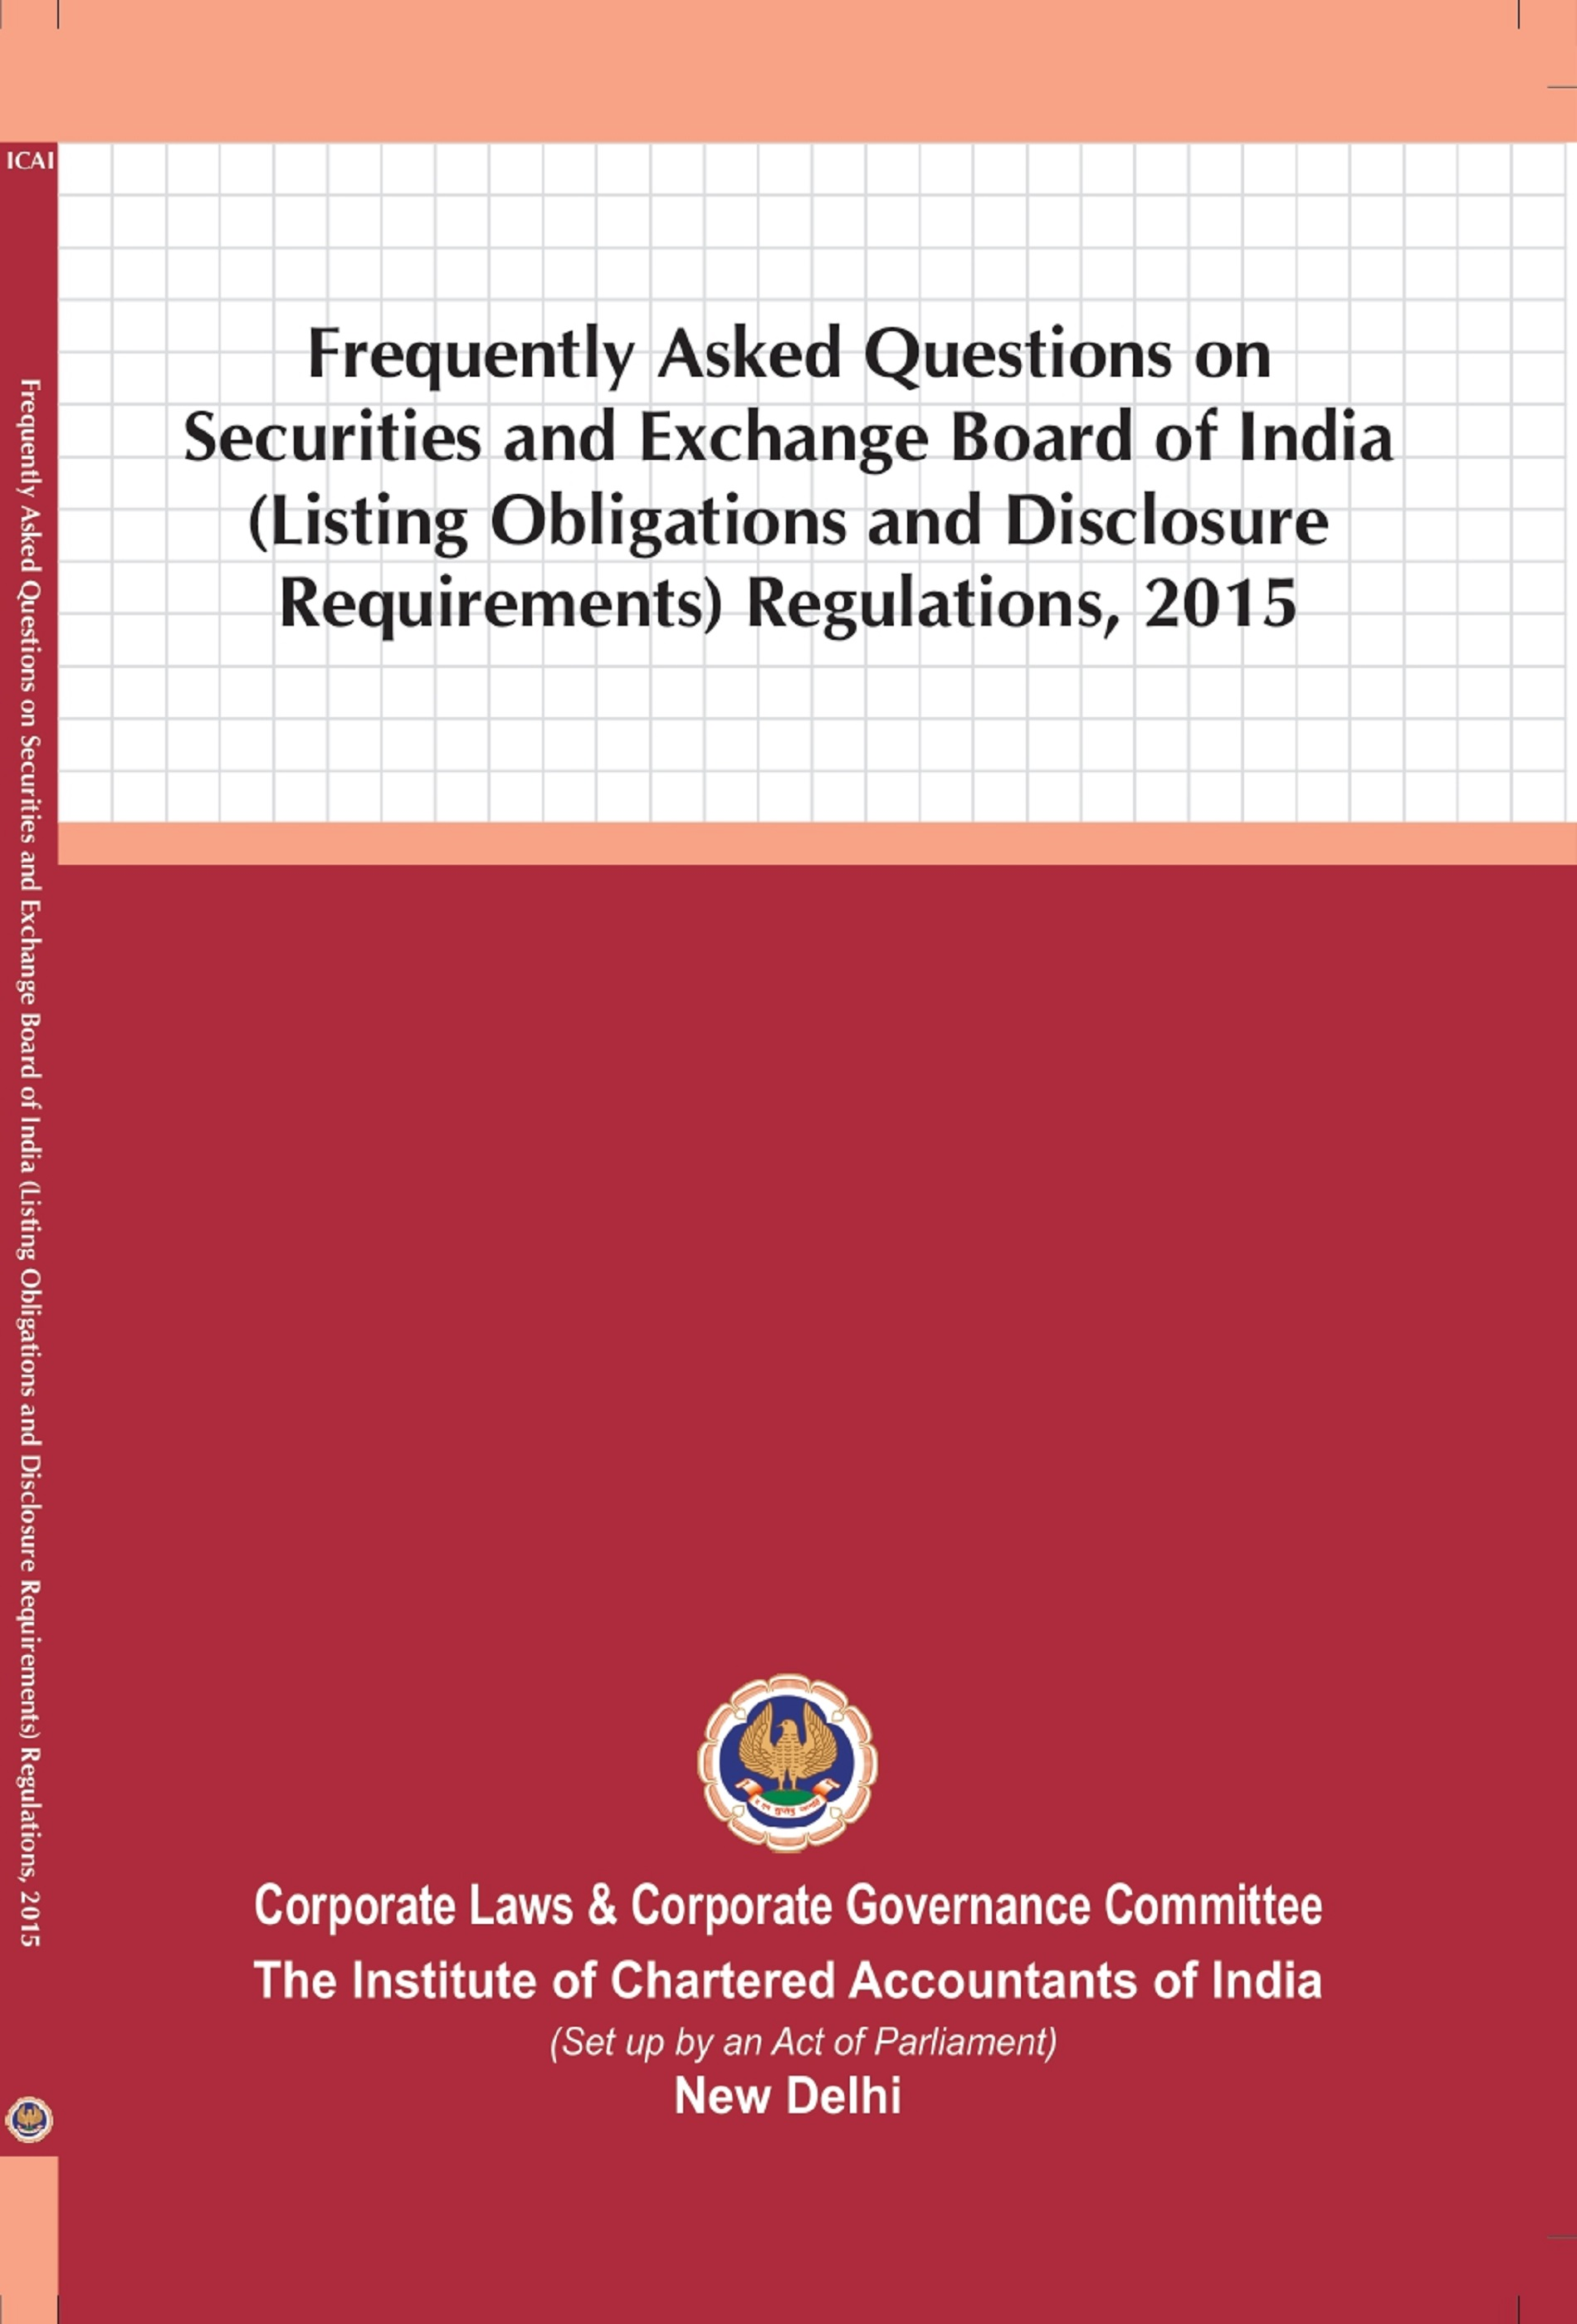 Frequently Asked Questions on Securities and Exchange Board of India (Listing Obligations and Disclosure Requirements) Regulations, 2015 (February, 2021)